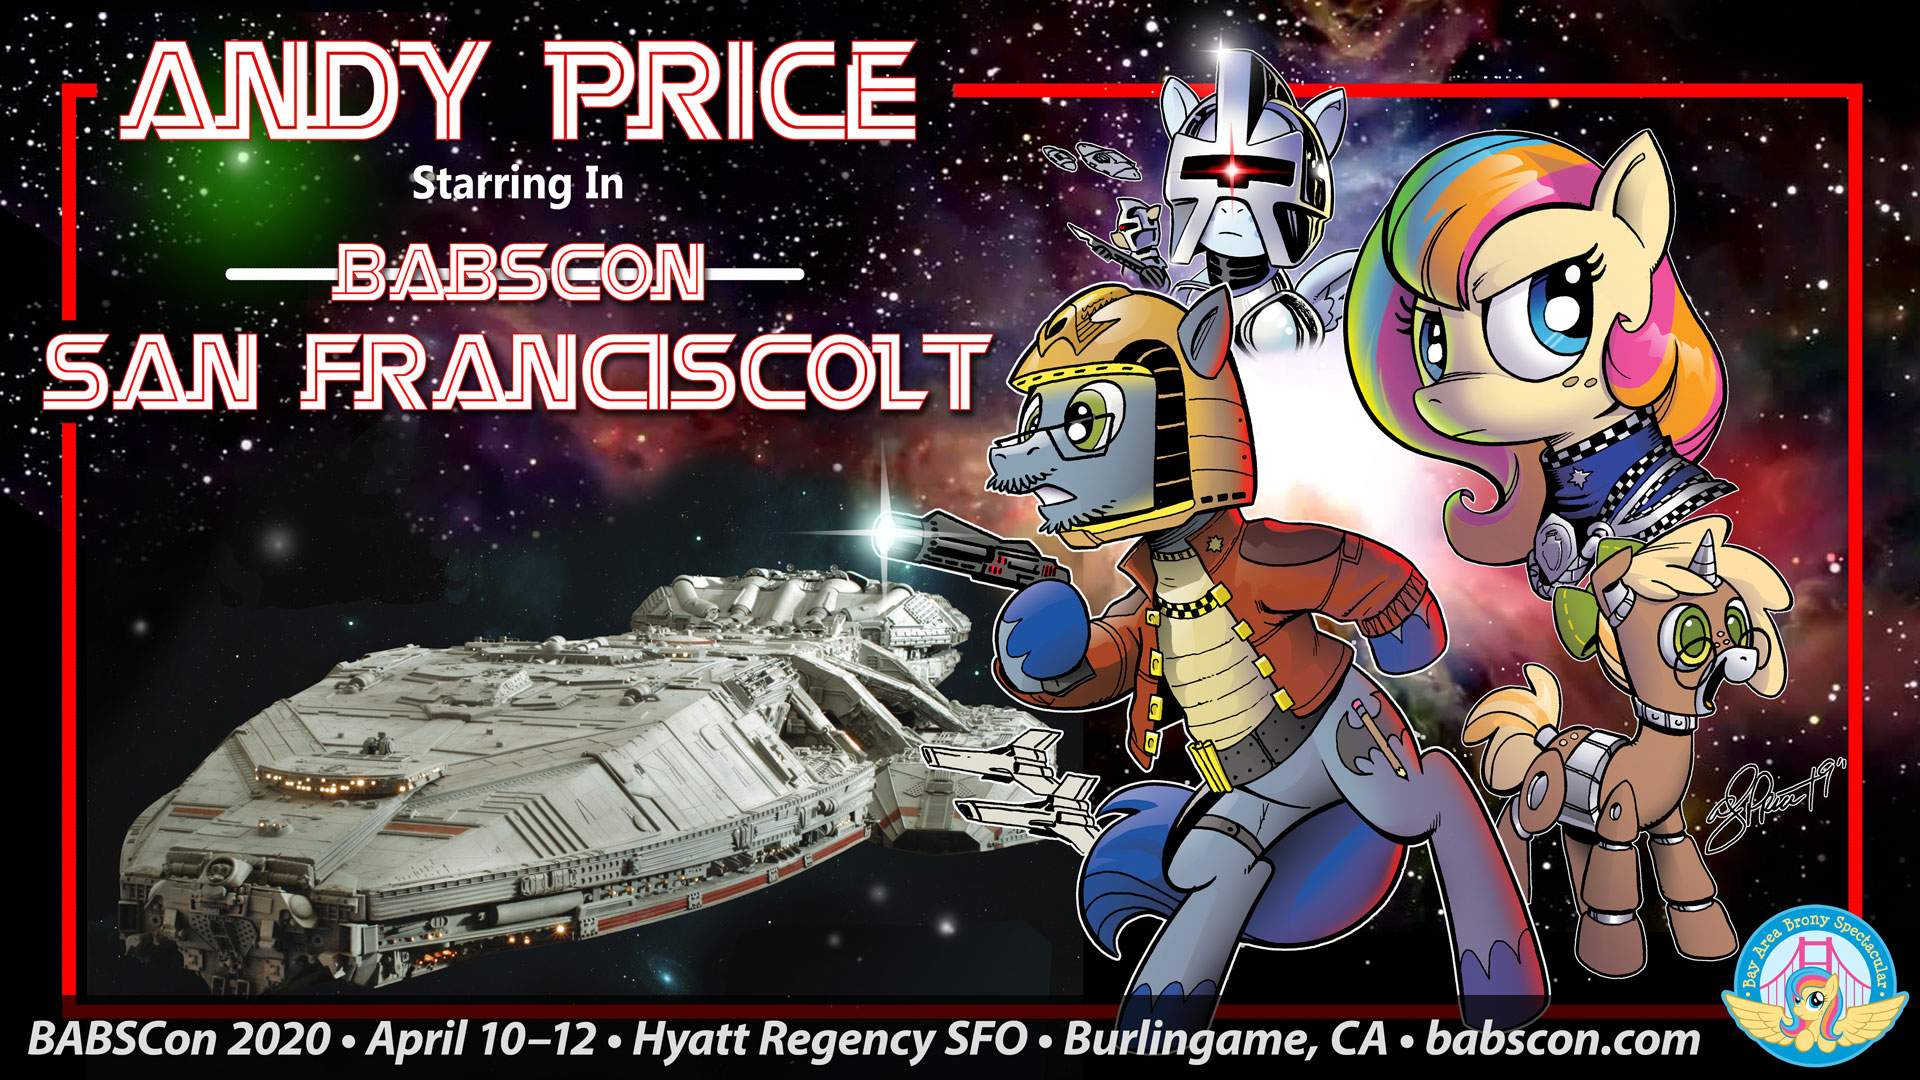 BABSCon Gets Galactic with Andy Price